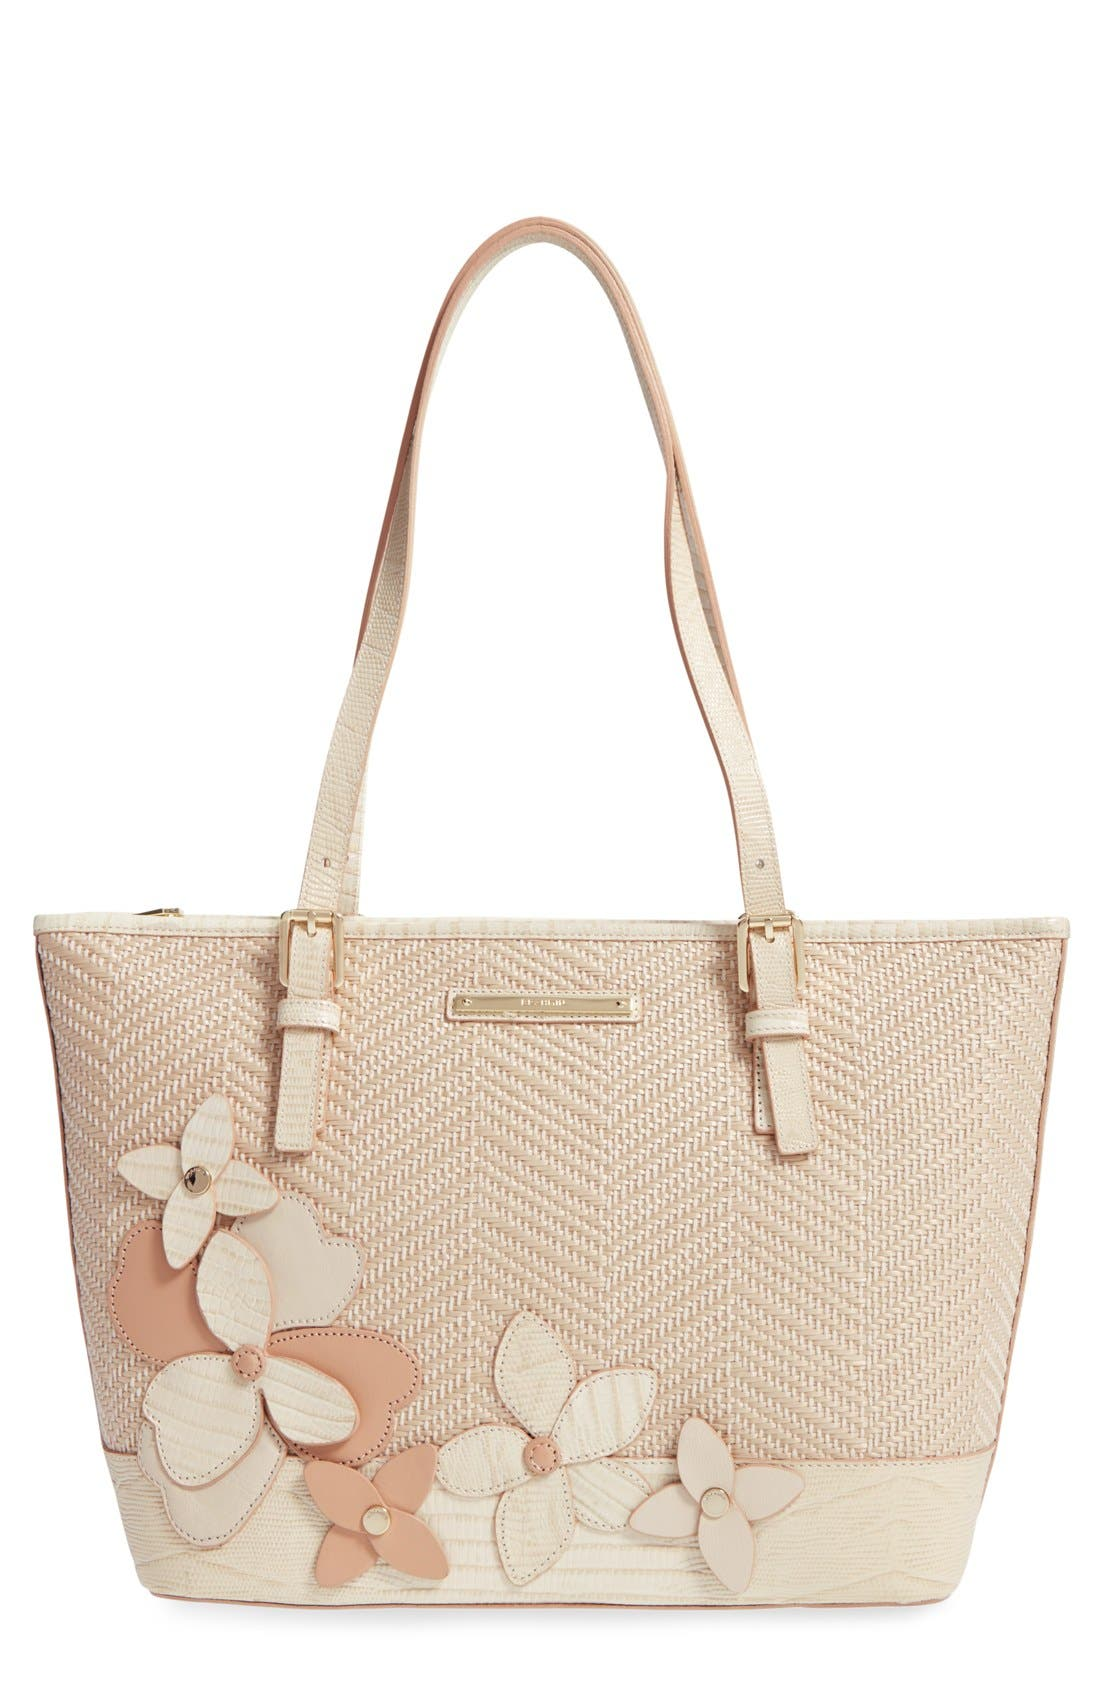 Main Image - Brahmin 'Medium Asher' Floral Embellished Woven Tote